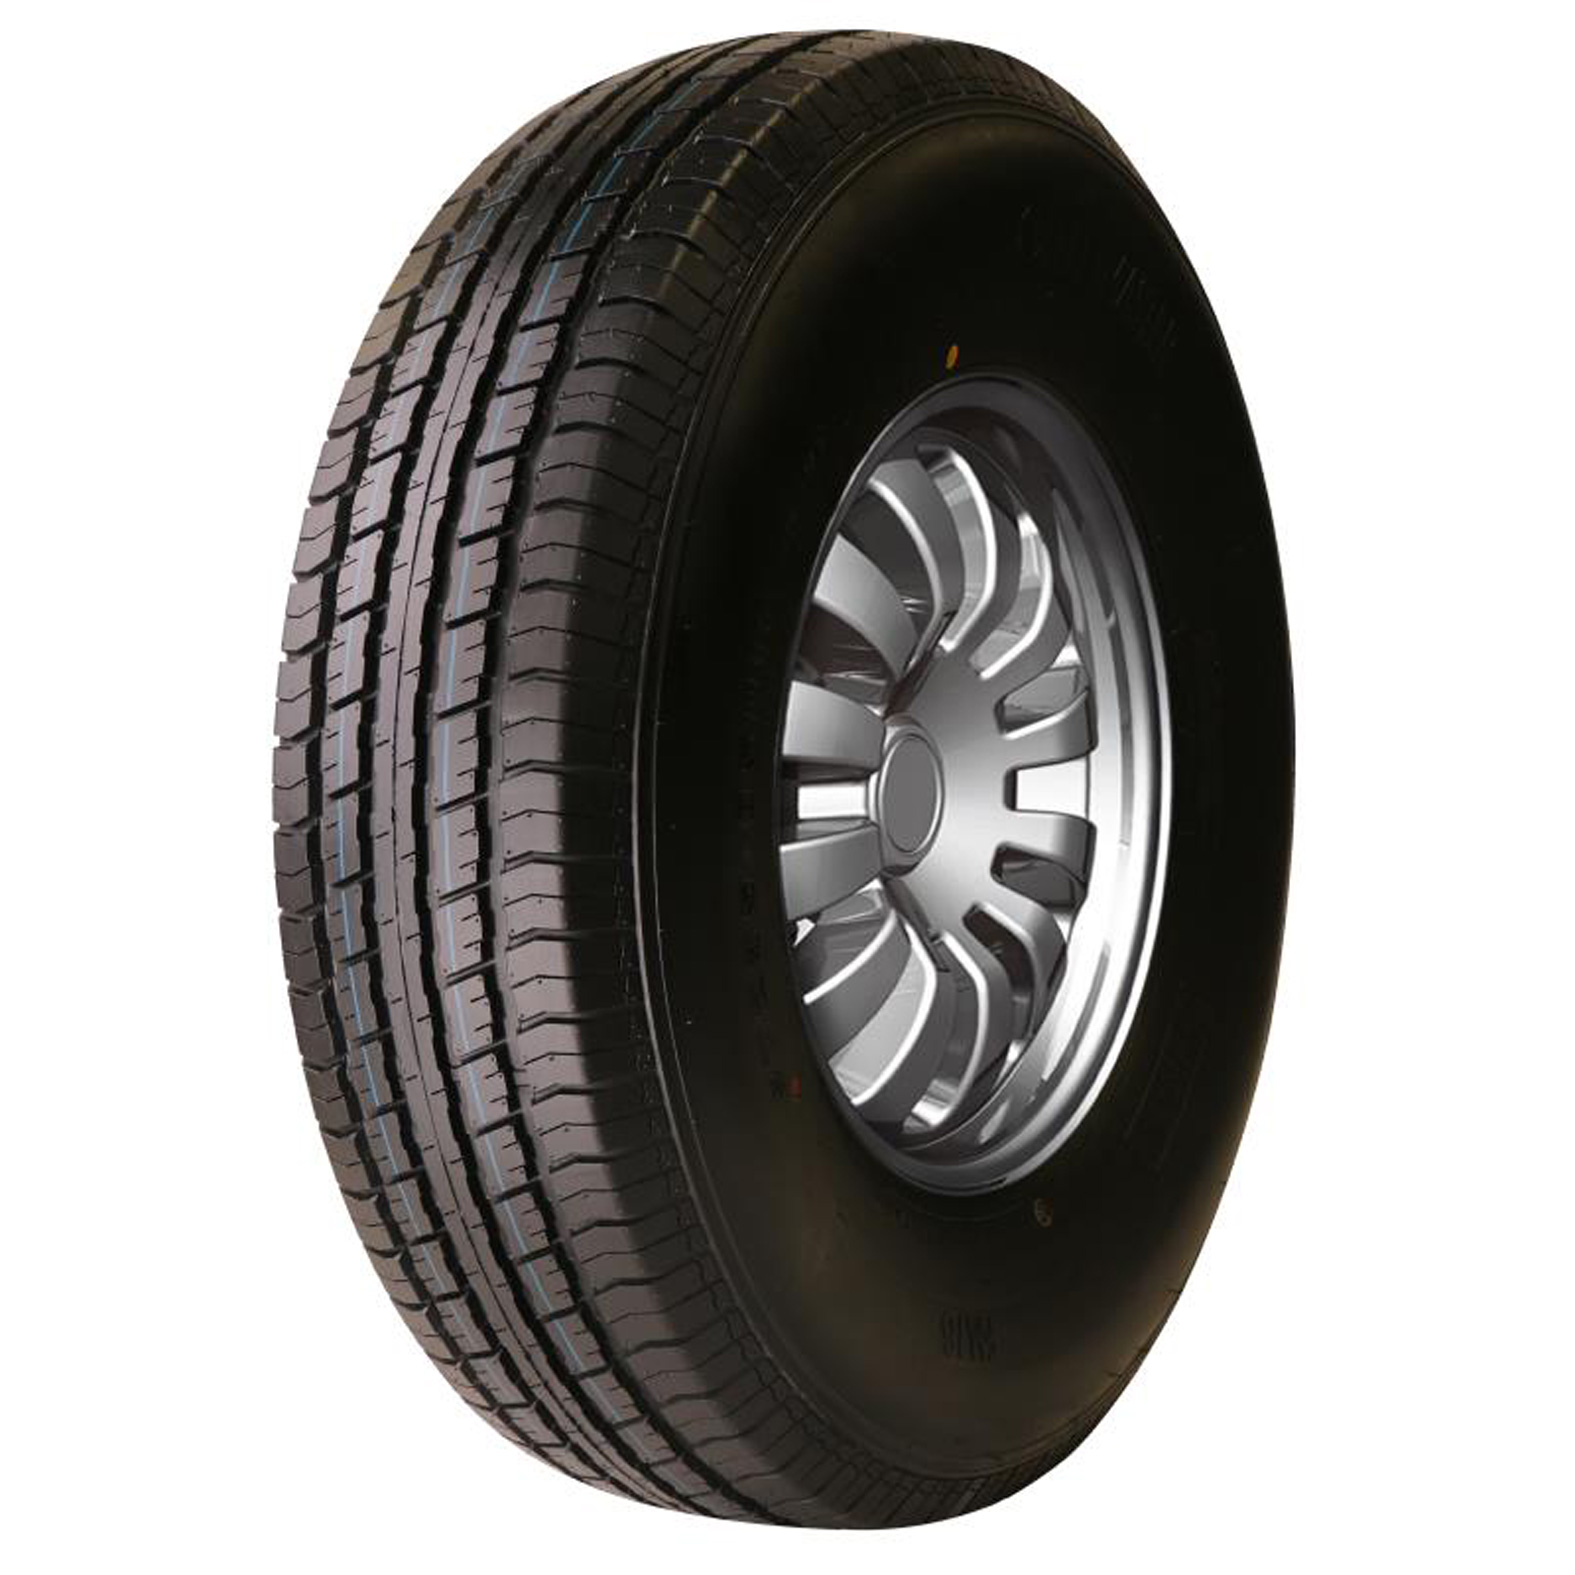 Bearway Trailer Tire - Angle